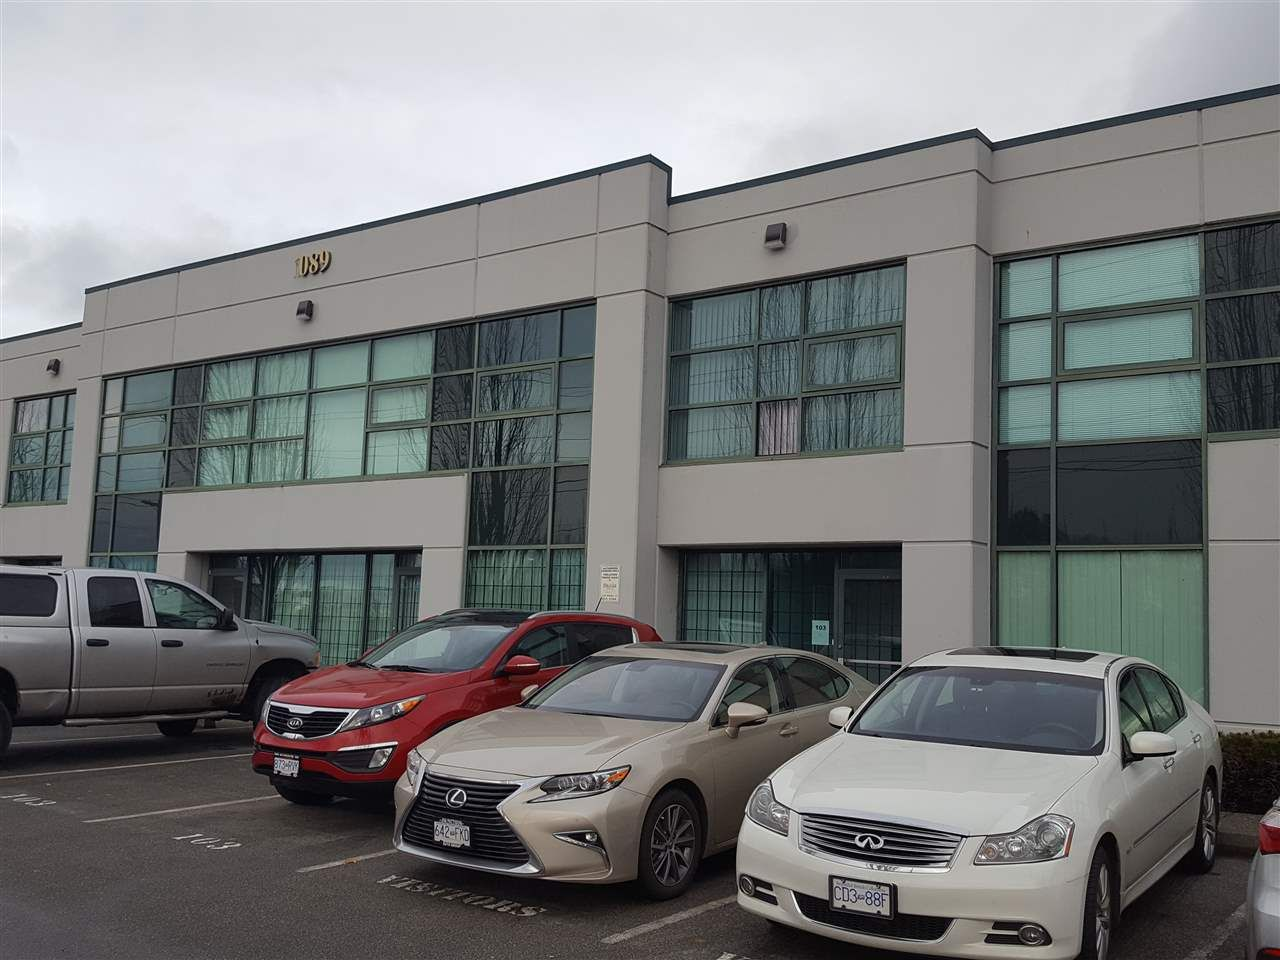 Main Photo: 103 1089 E KENT Avenue in Vancouver: South Vancouver Industrial for lease (Vancouver East)  : MLS®# C8009580